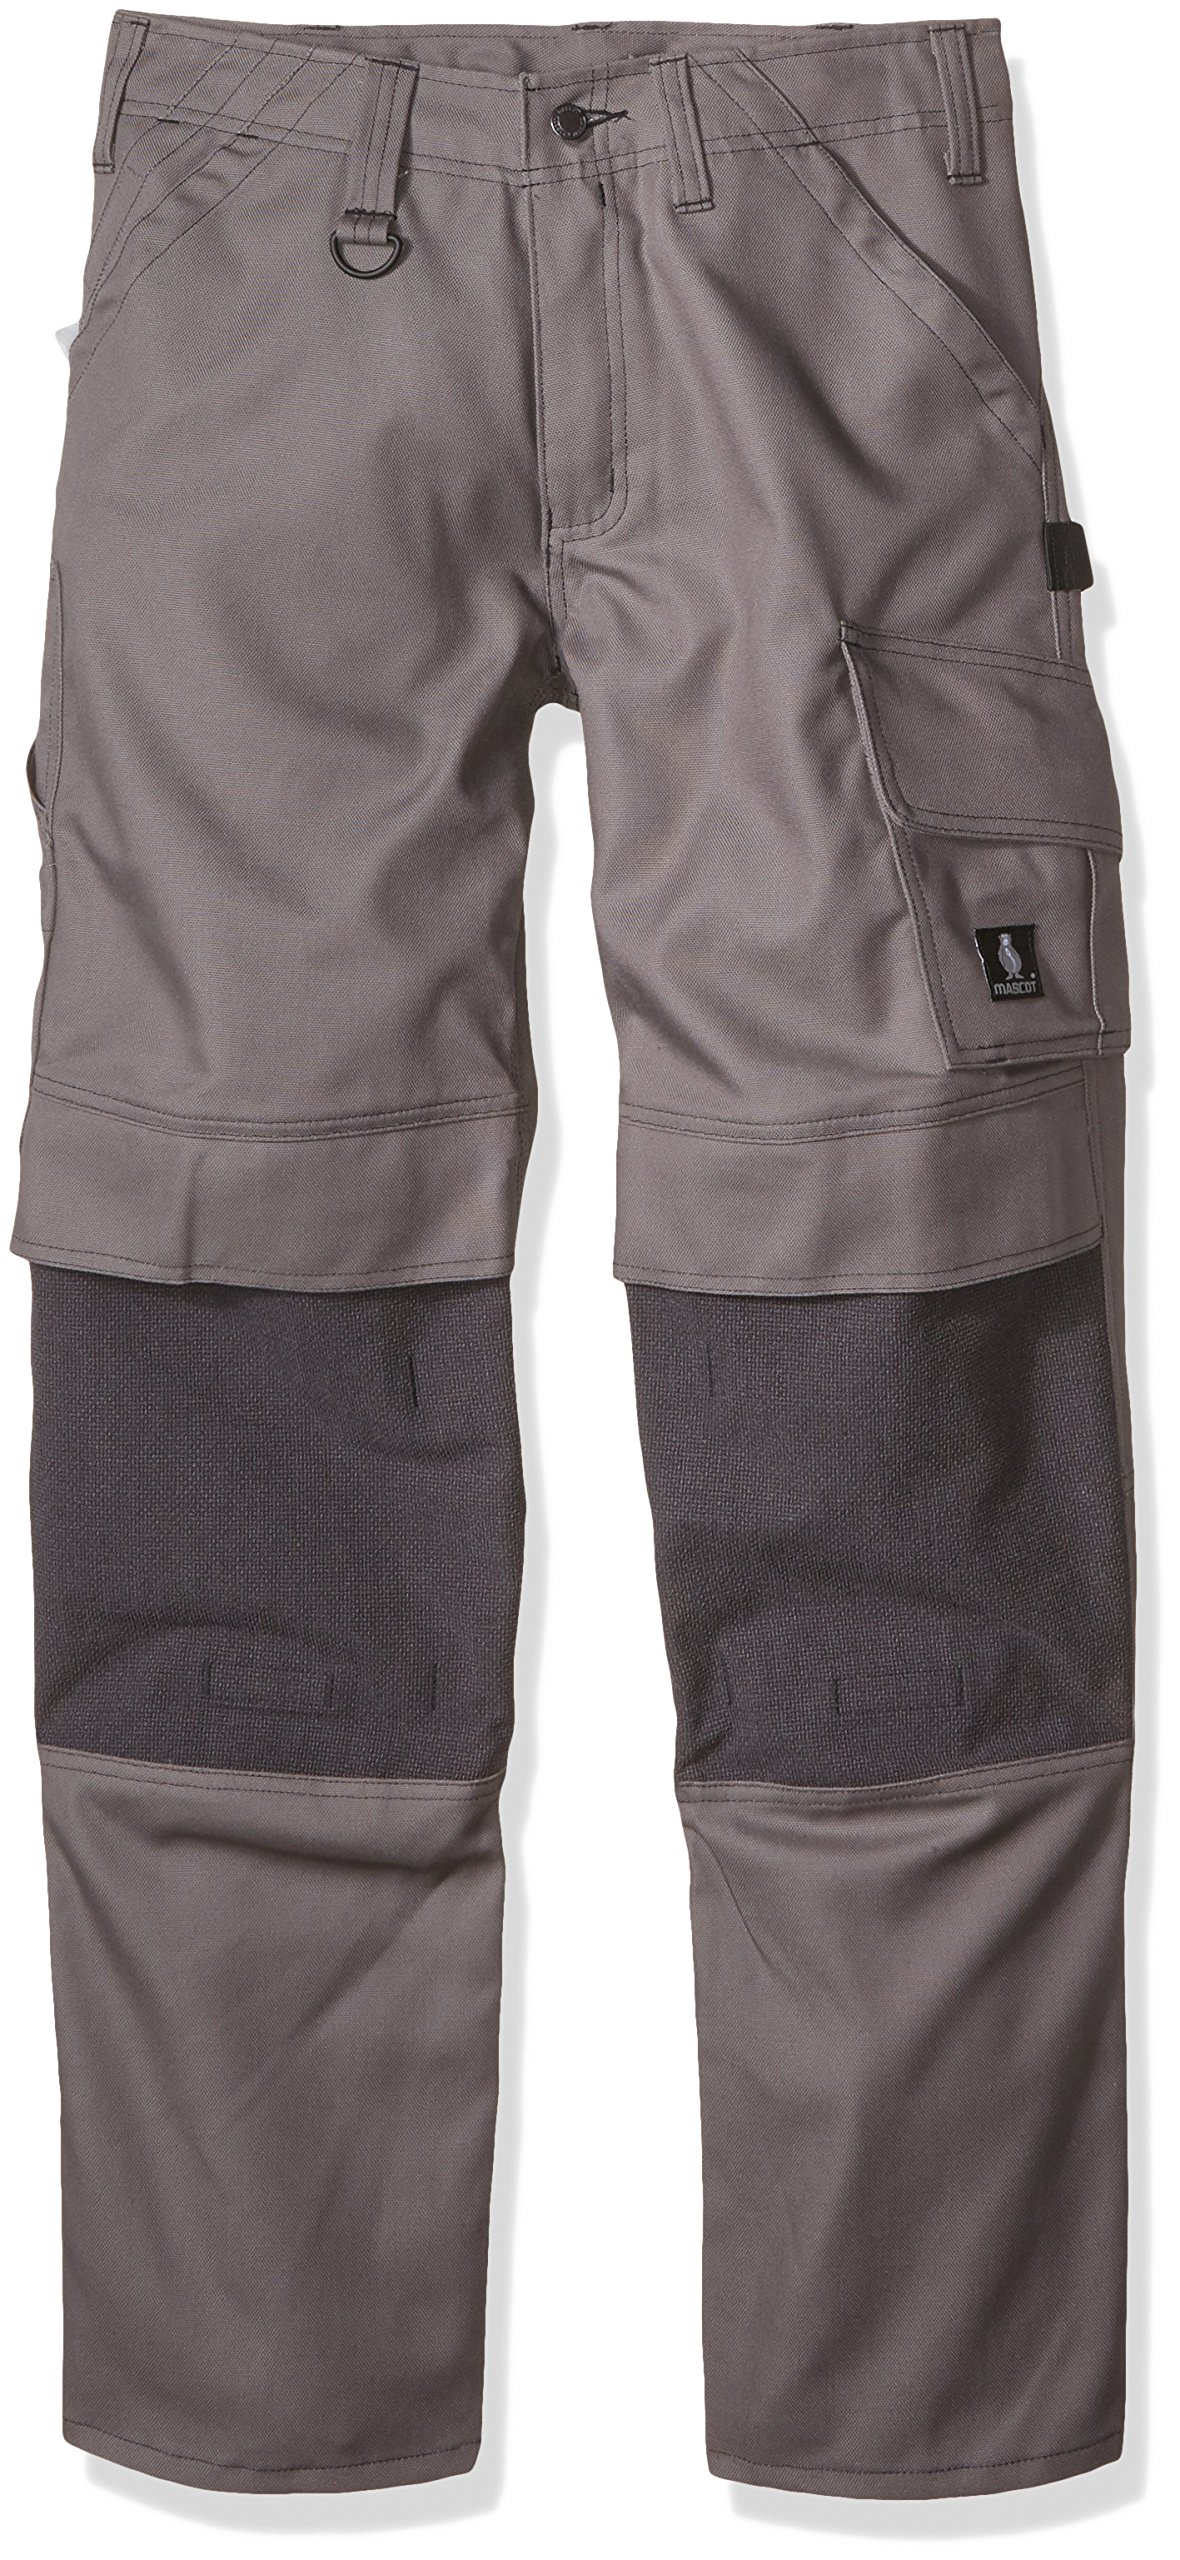 Mascot 05079-010-888-82C47 Lerida Trousers, L82cm/C47, Anthracite